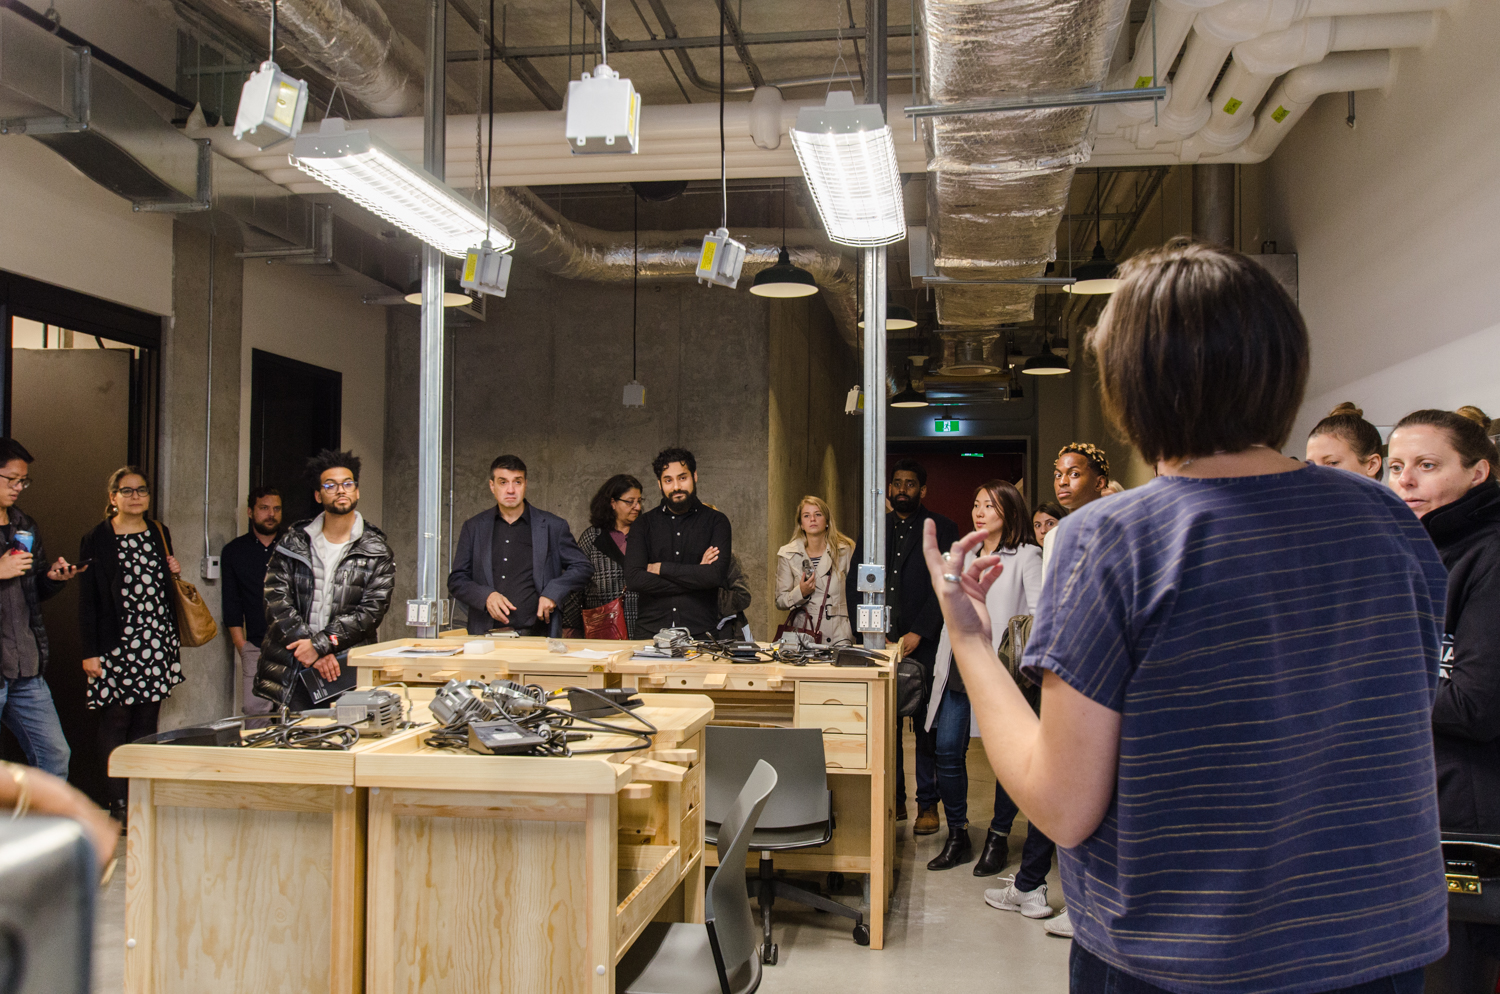 Tor McGlade leading an interior design tour of Artscape Daniels Launchpad, showing the group a prototyping workshop with wooden work stations